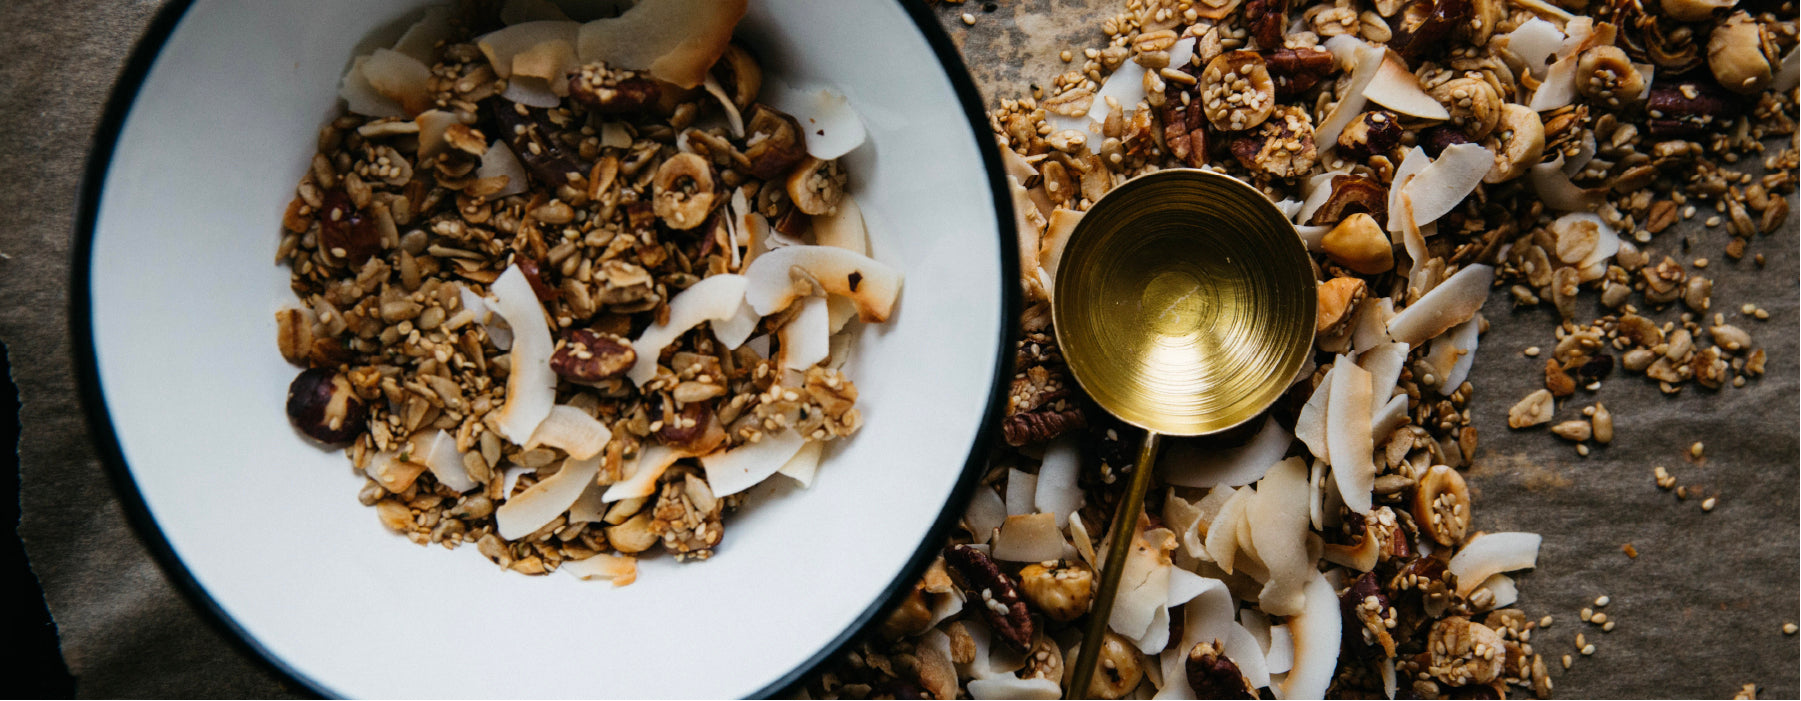 Gluten Free Coffee Granola Recipes to Try Today  - Coffee Life by EspressoWorks